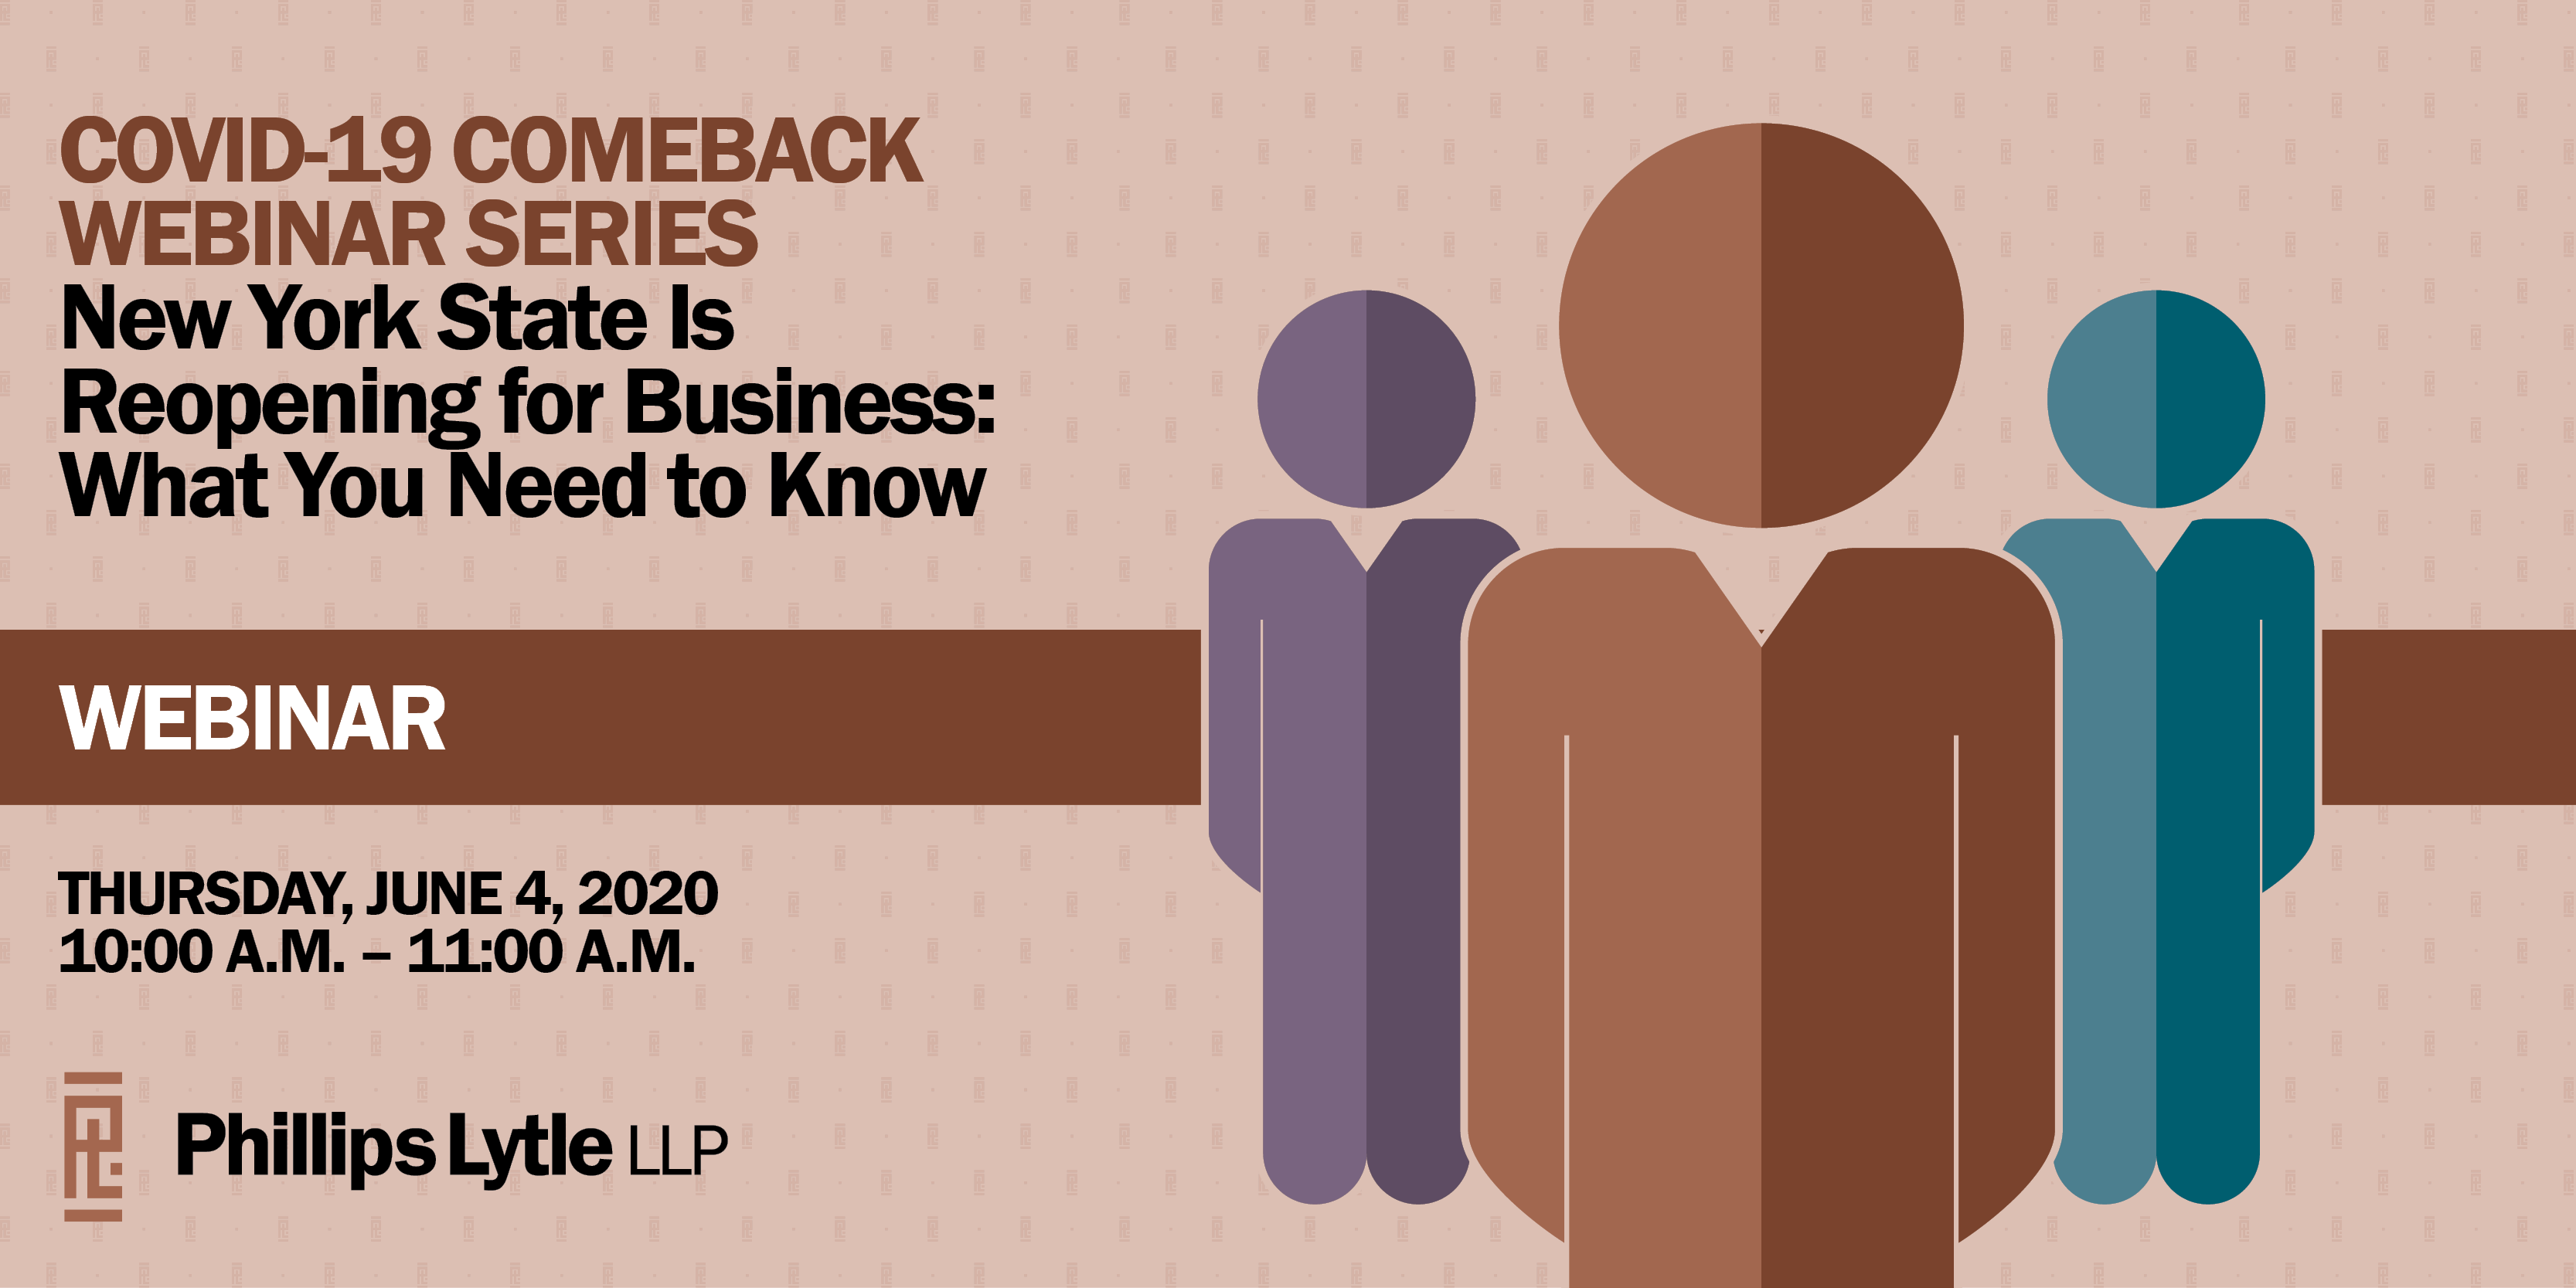 Webinar | COVID-19 Comeback Series | New York State is Reopening for Business: What You Need to Know